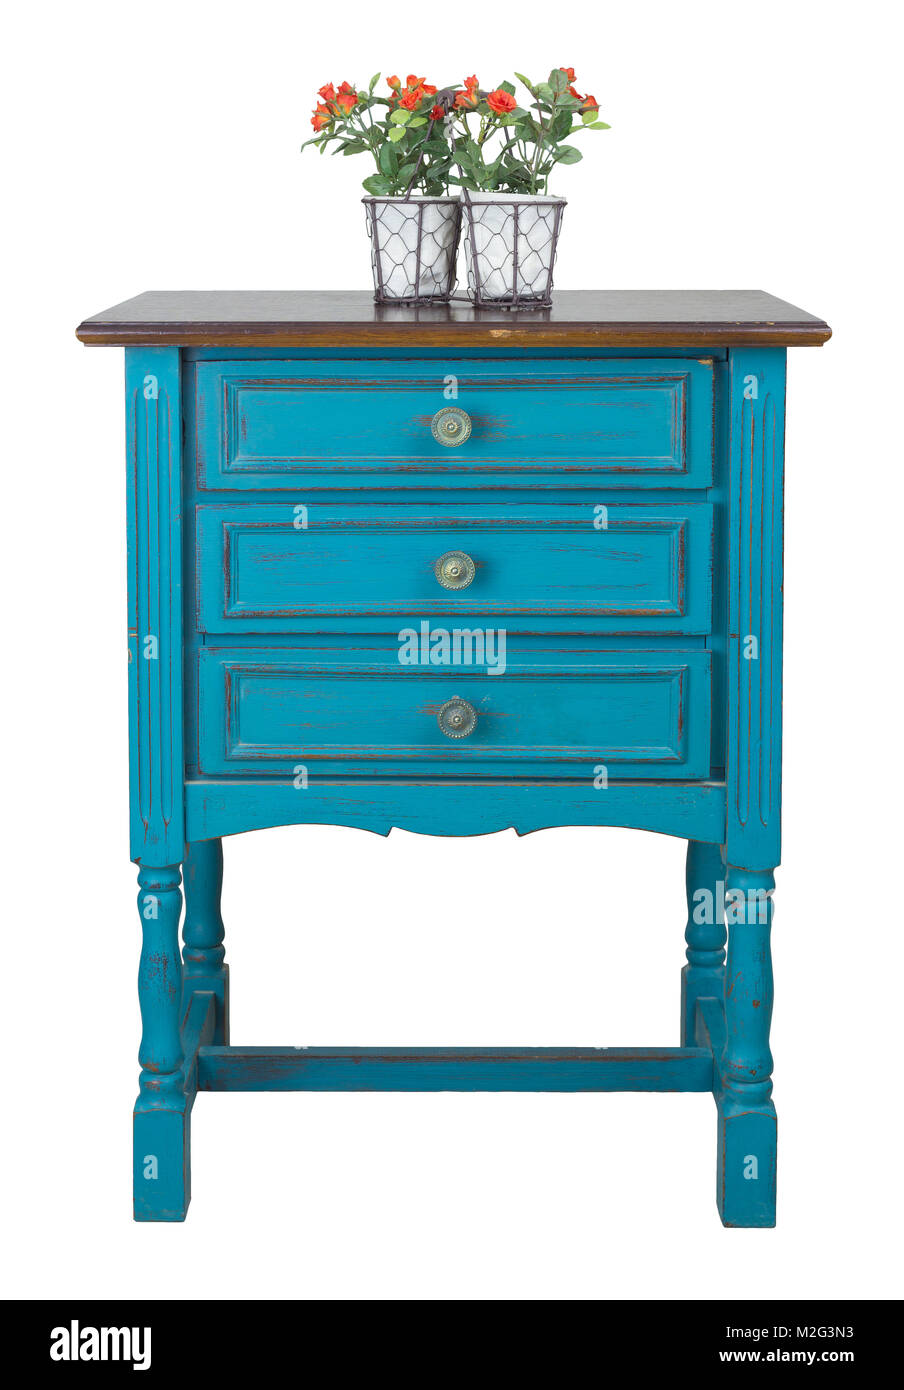 Vintage Furniture Vintage Turquoise Commode Chest Of